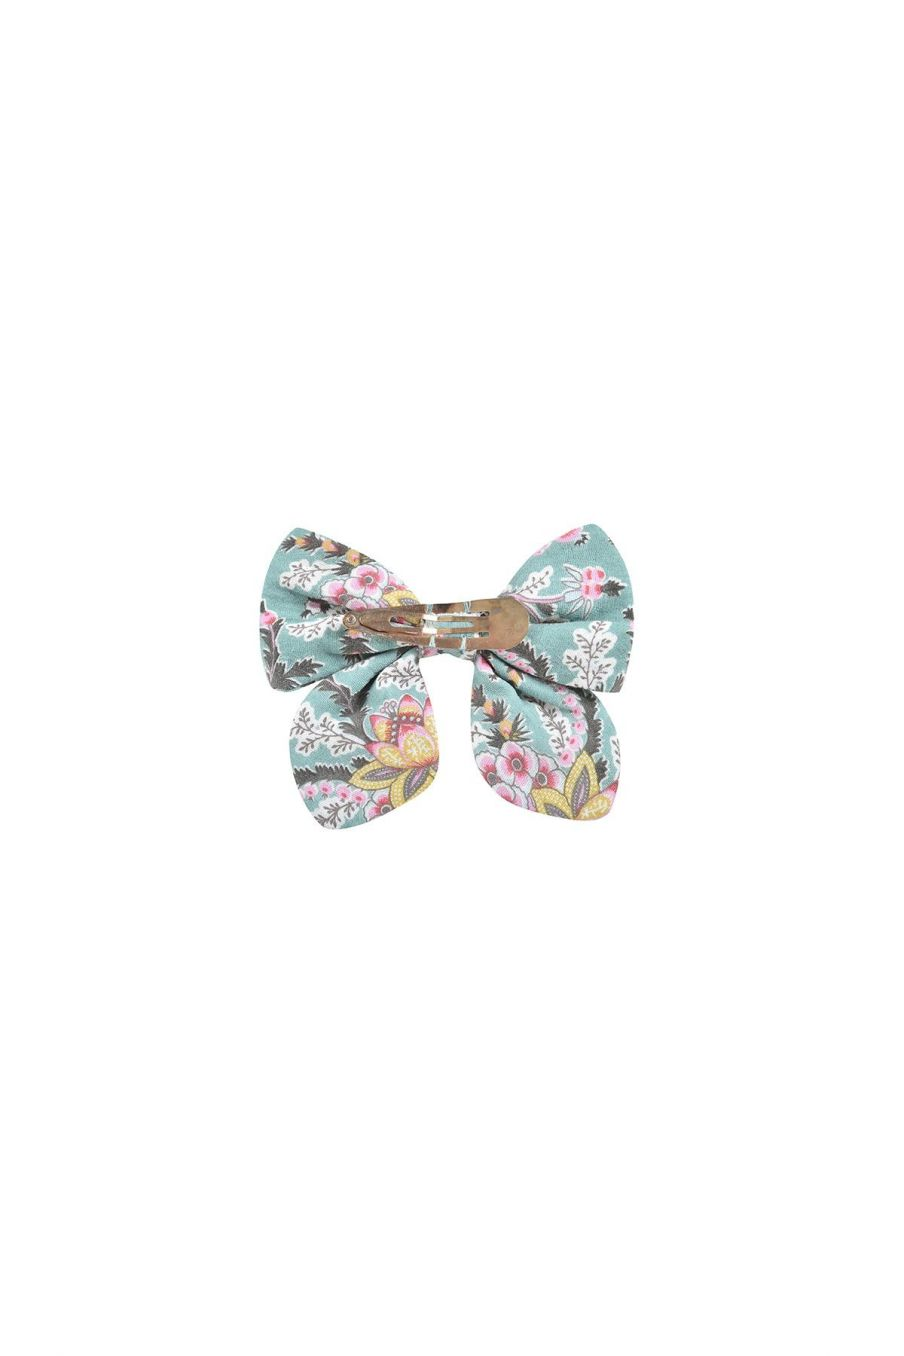 barrette fille lisa blue french flowers - louise misha